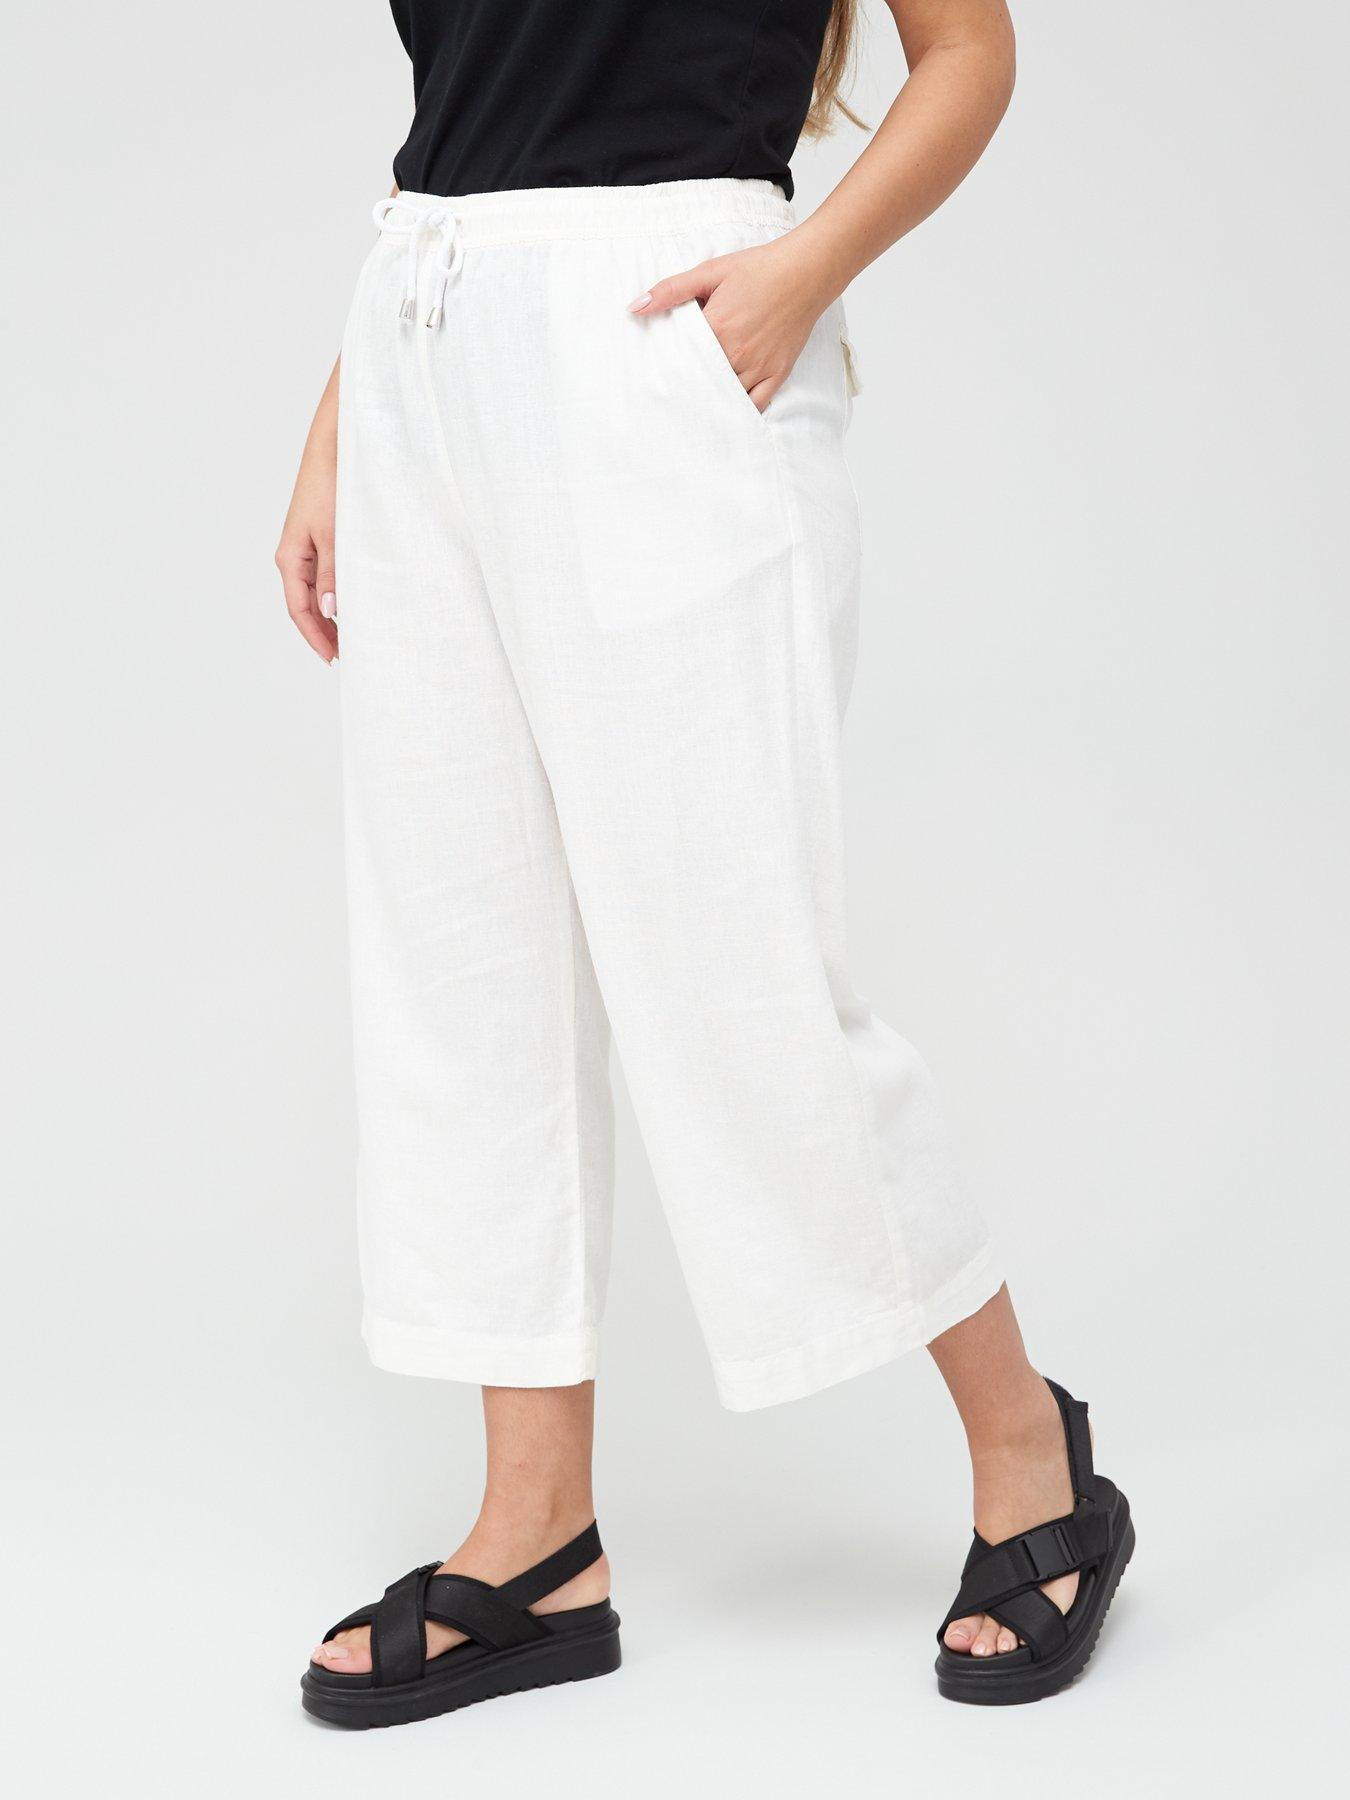 New Womens White Linen NEXT Maternity Crop Trousers Size 10 8